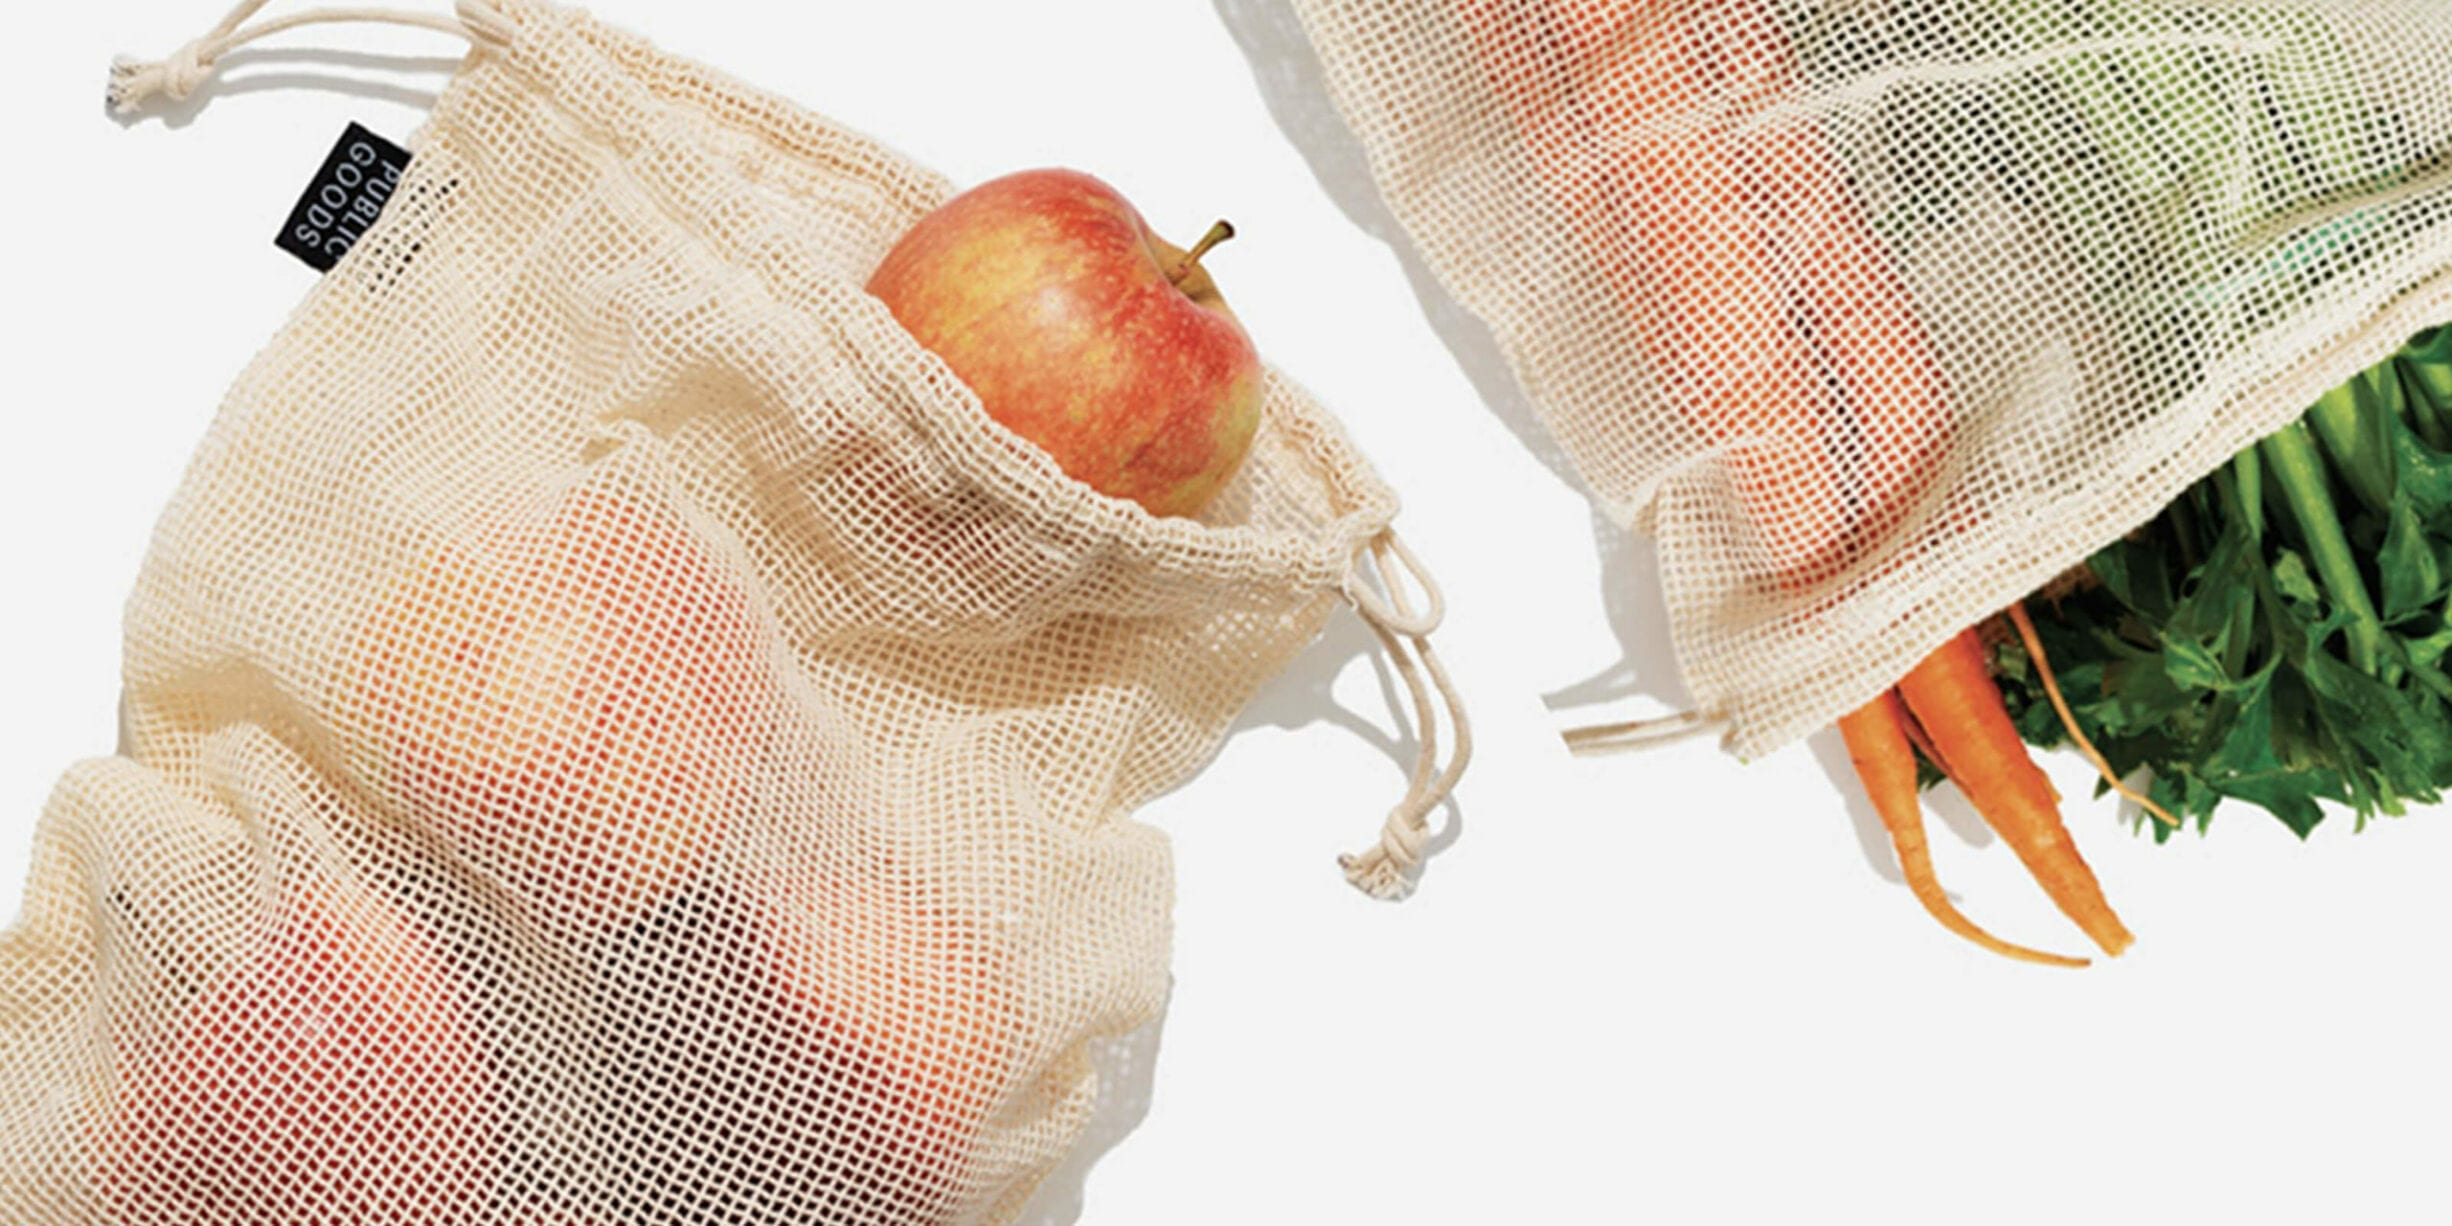 fruit and vegetables in public goods mesh bags